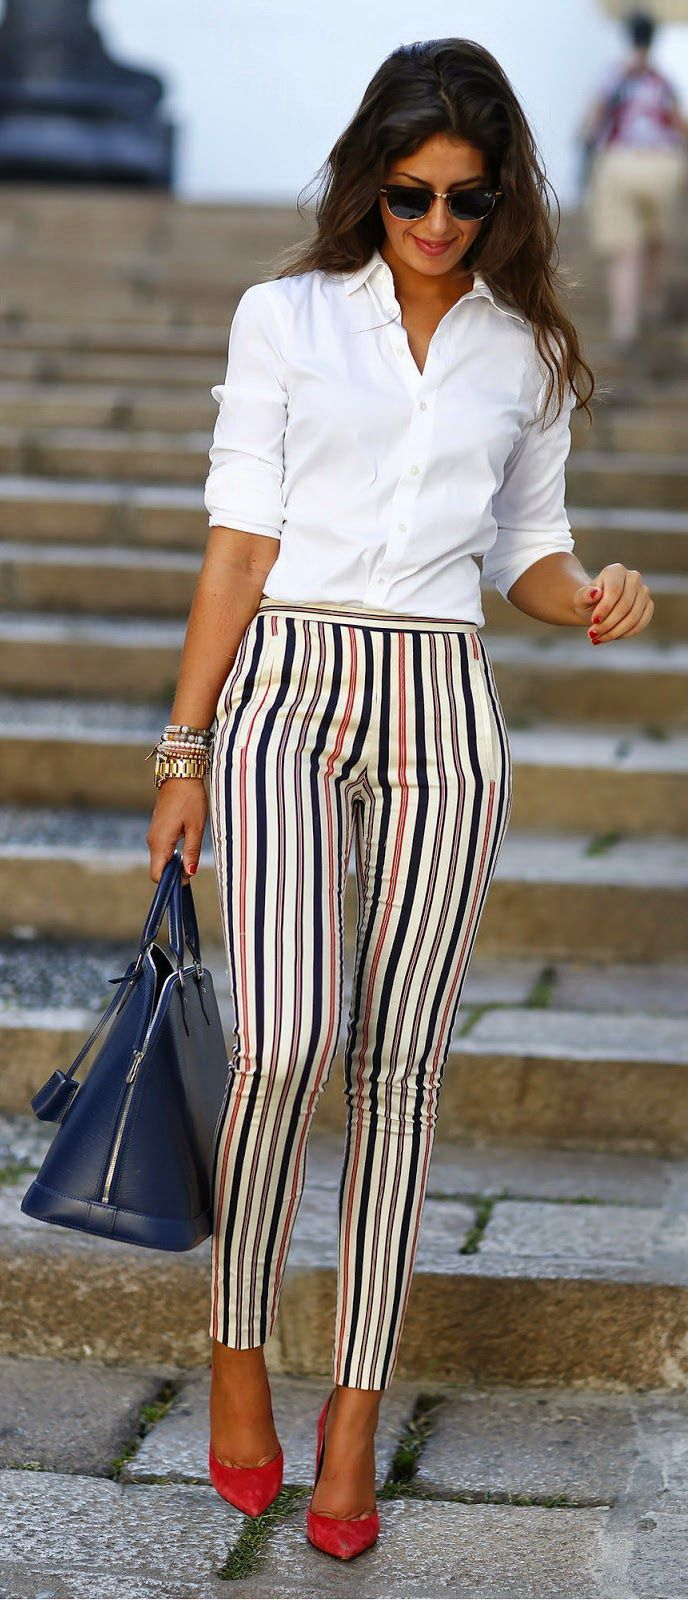 Summer work outfits that won't make you sweat about style!